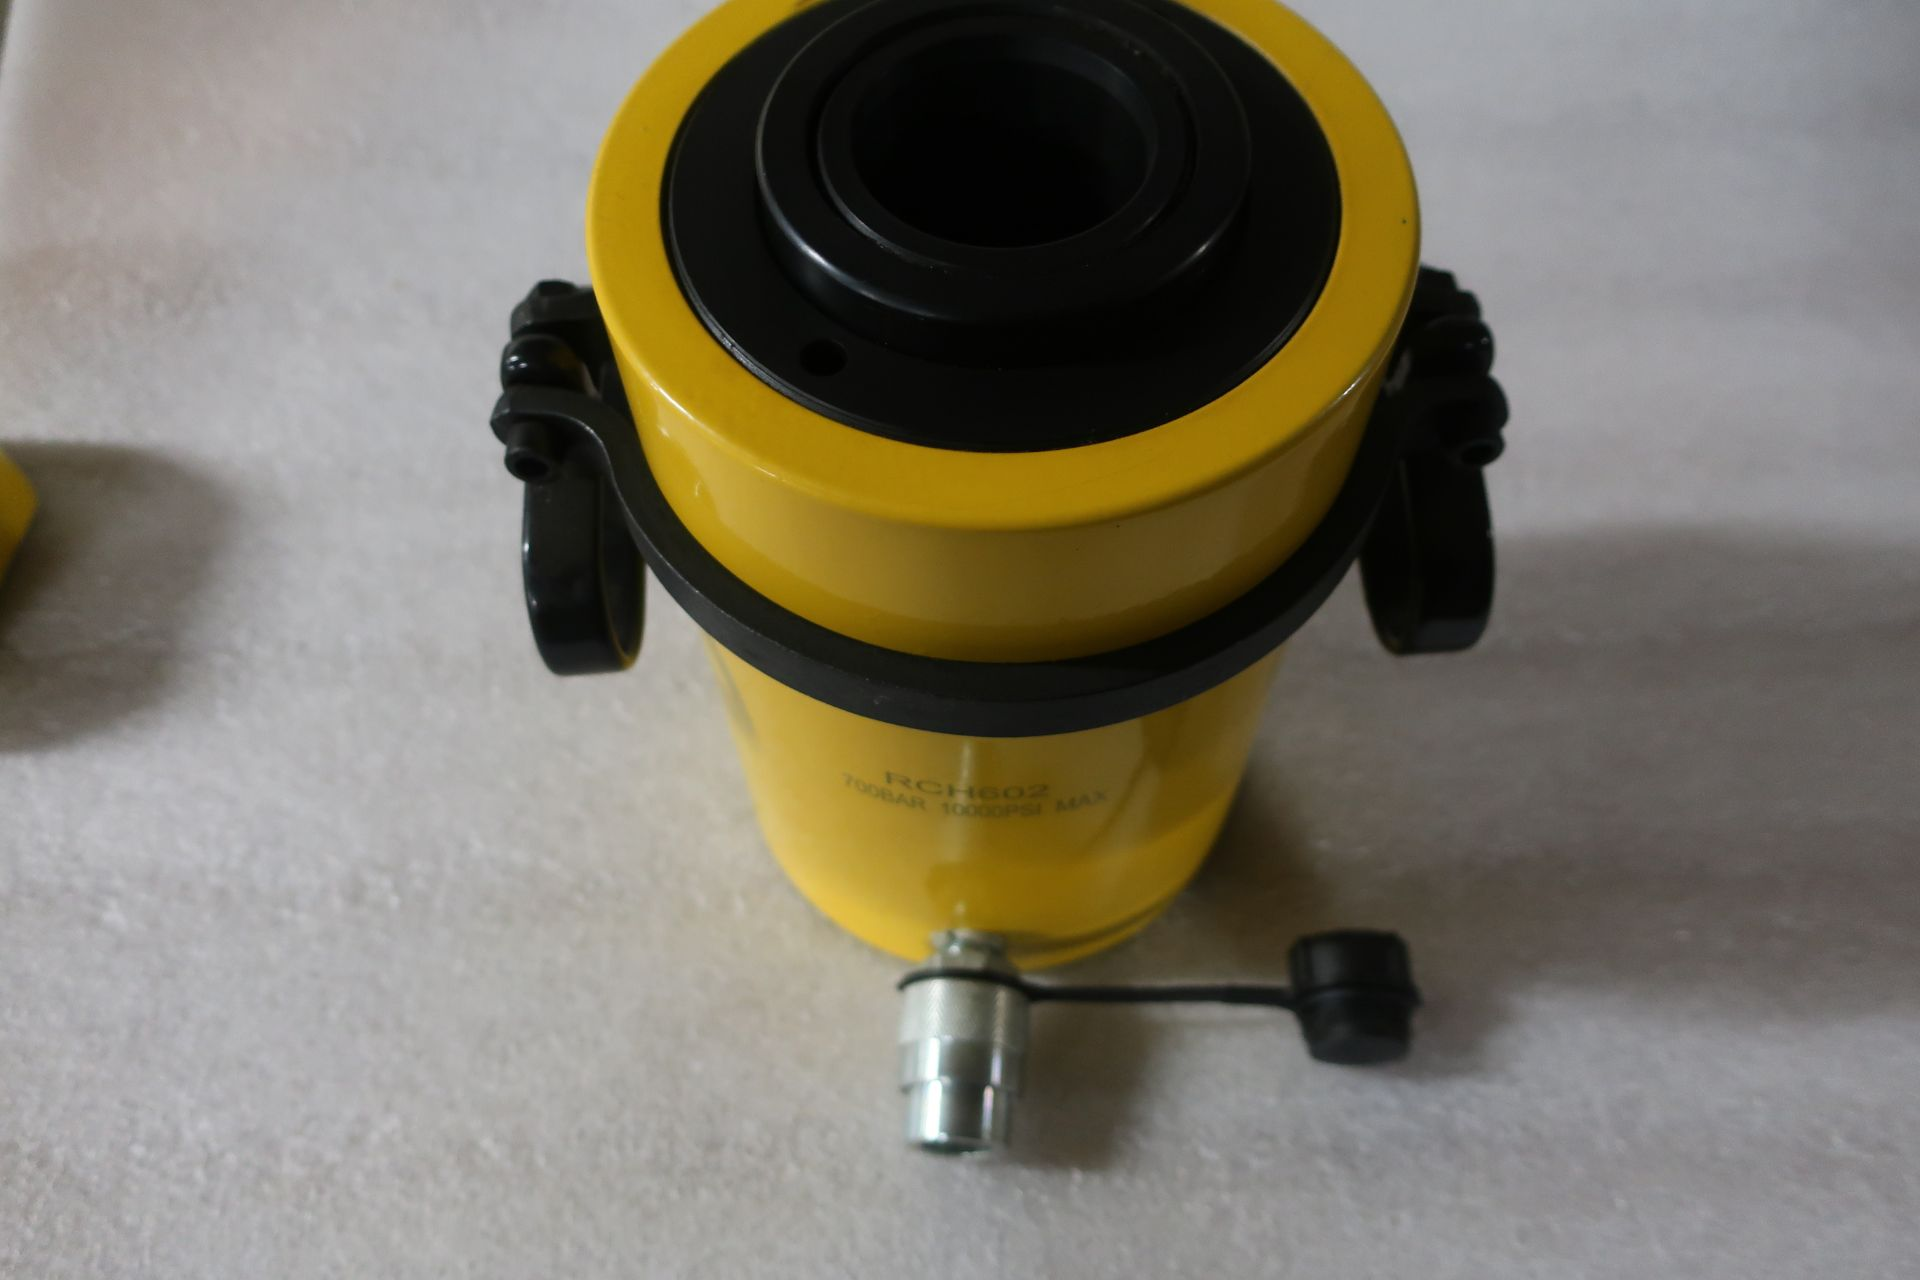 """RCH-602 MINT Hole Jack - 60 ton Hollow Hydraulic Jack with 2"""" stroke - hole through type cylinder - Image 2 of 2"""